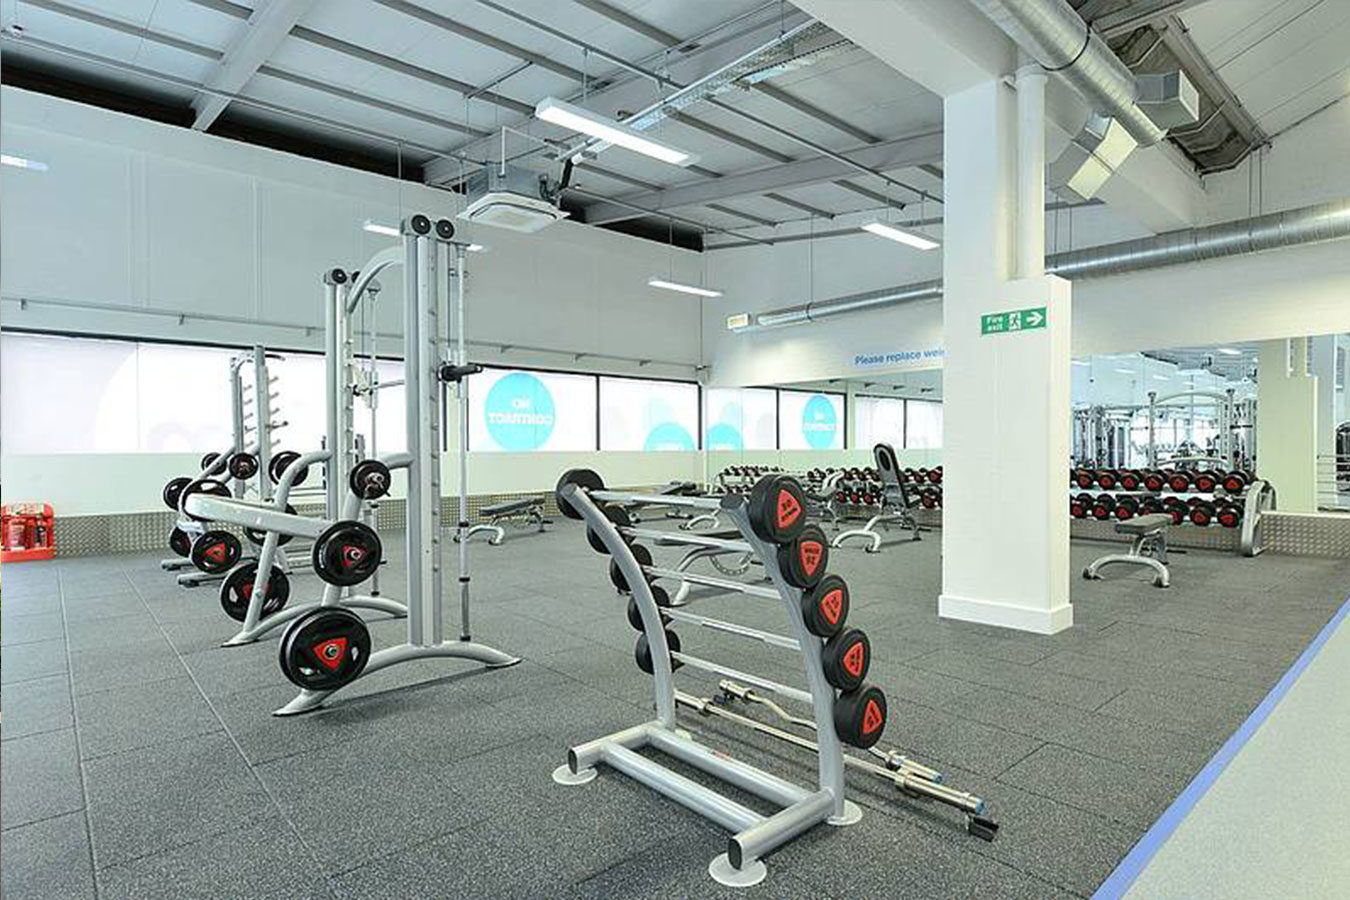 places-gym-leyland-interior-by-armex-systems-2